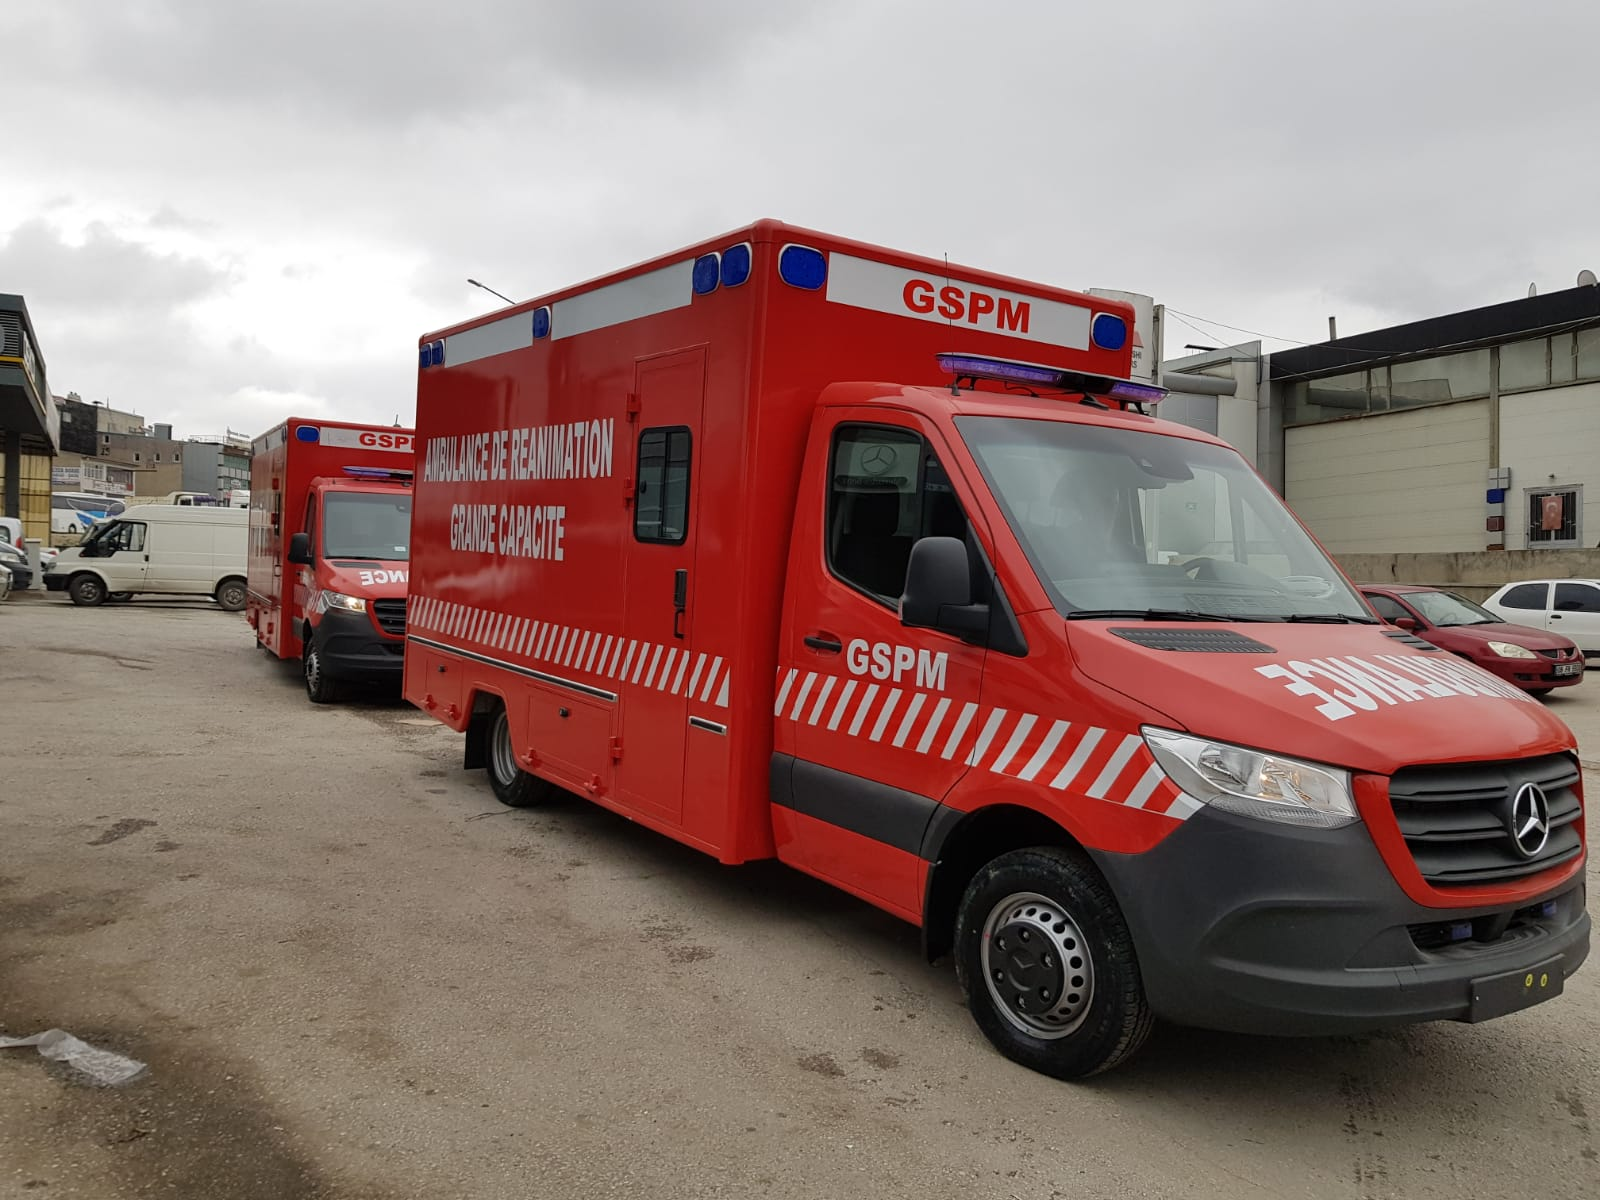 SENEGAL MINITRSY OF HEALTH 2 UNITS OF AMBULANCES - MAY 2020